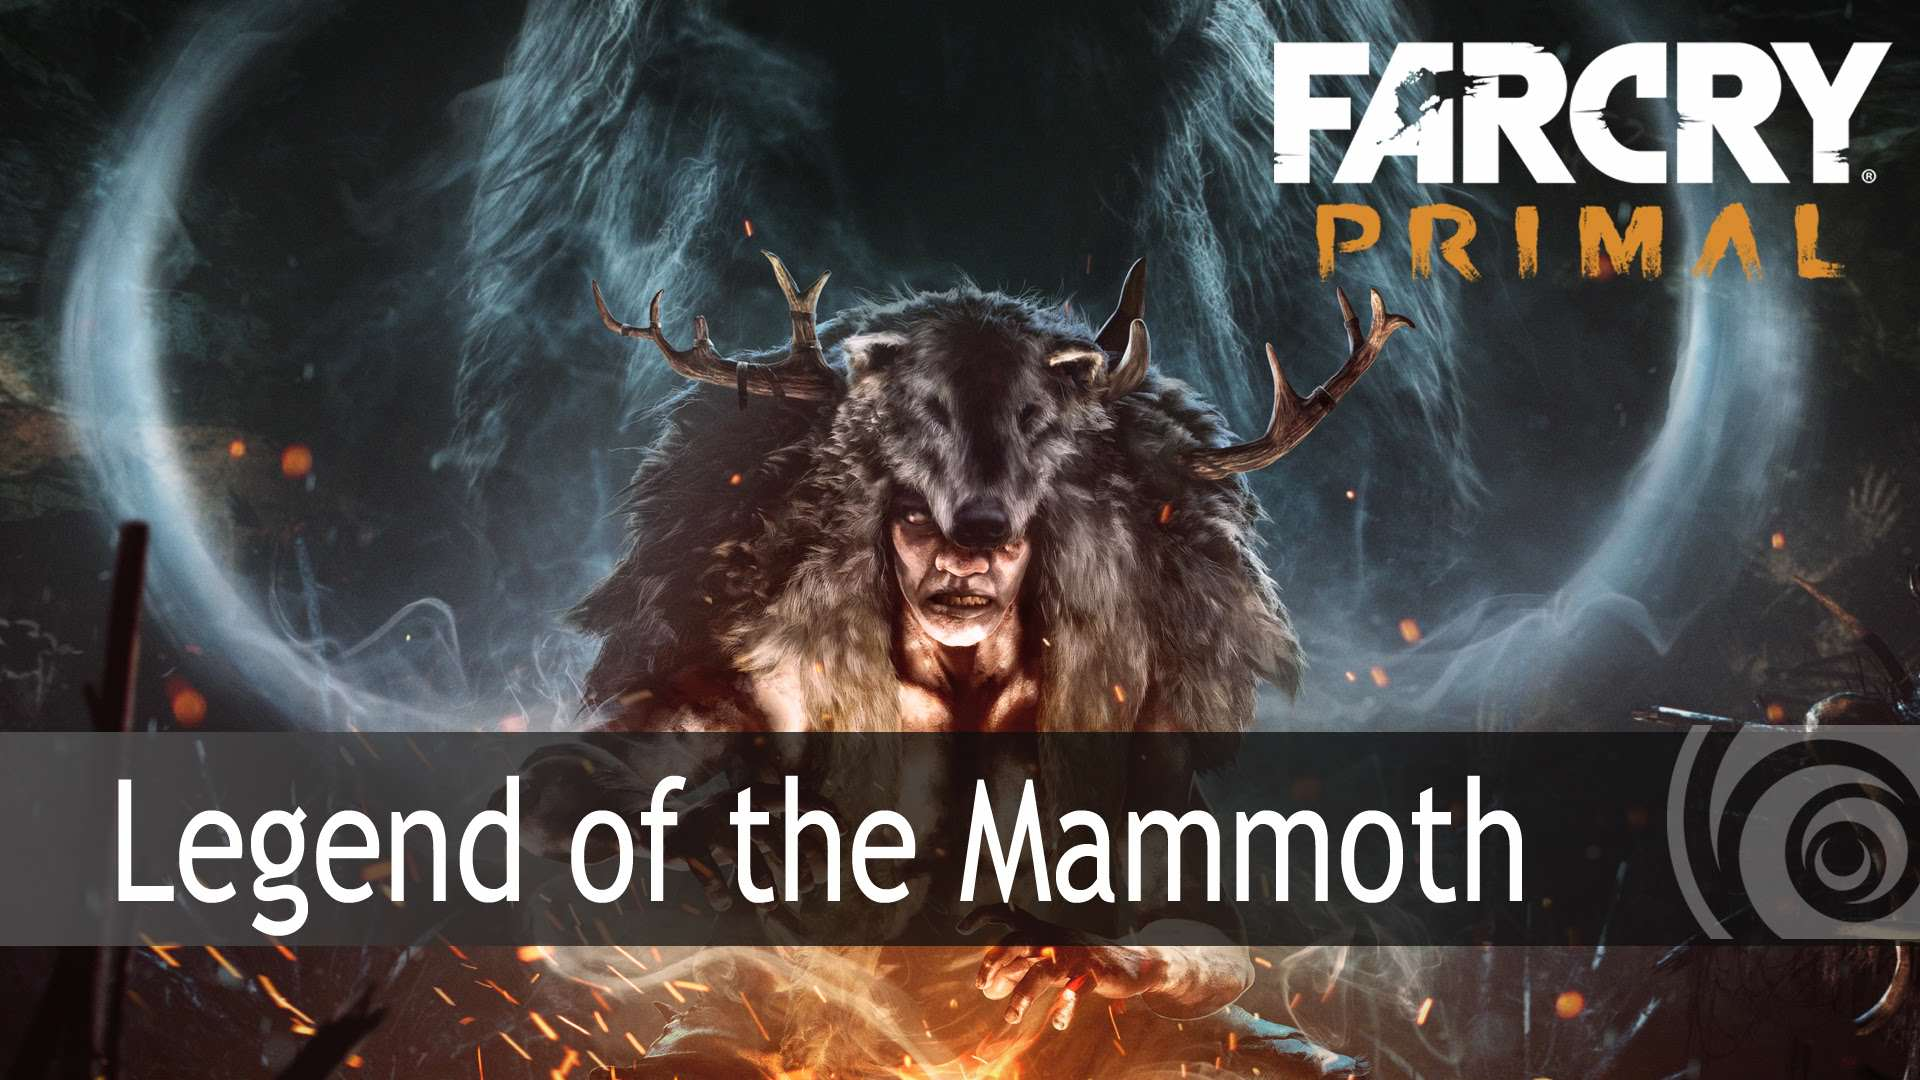 maxresdefault 2 5 First Person Mammoth Gameplay In New Far Cry Primal Trailer